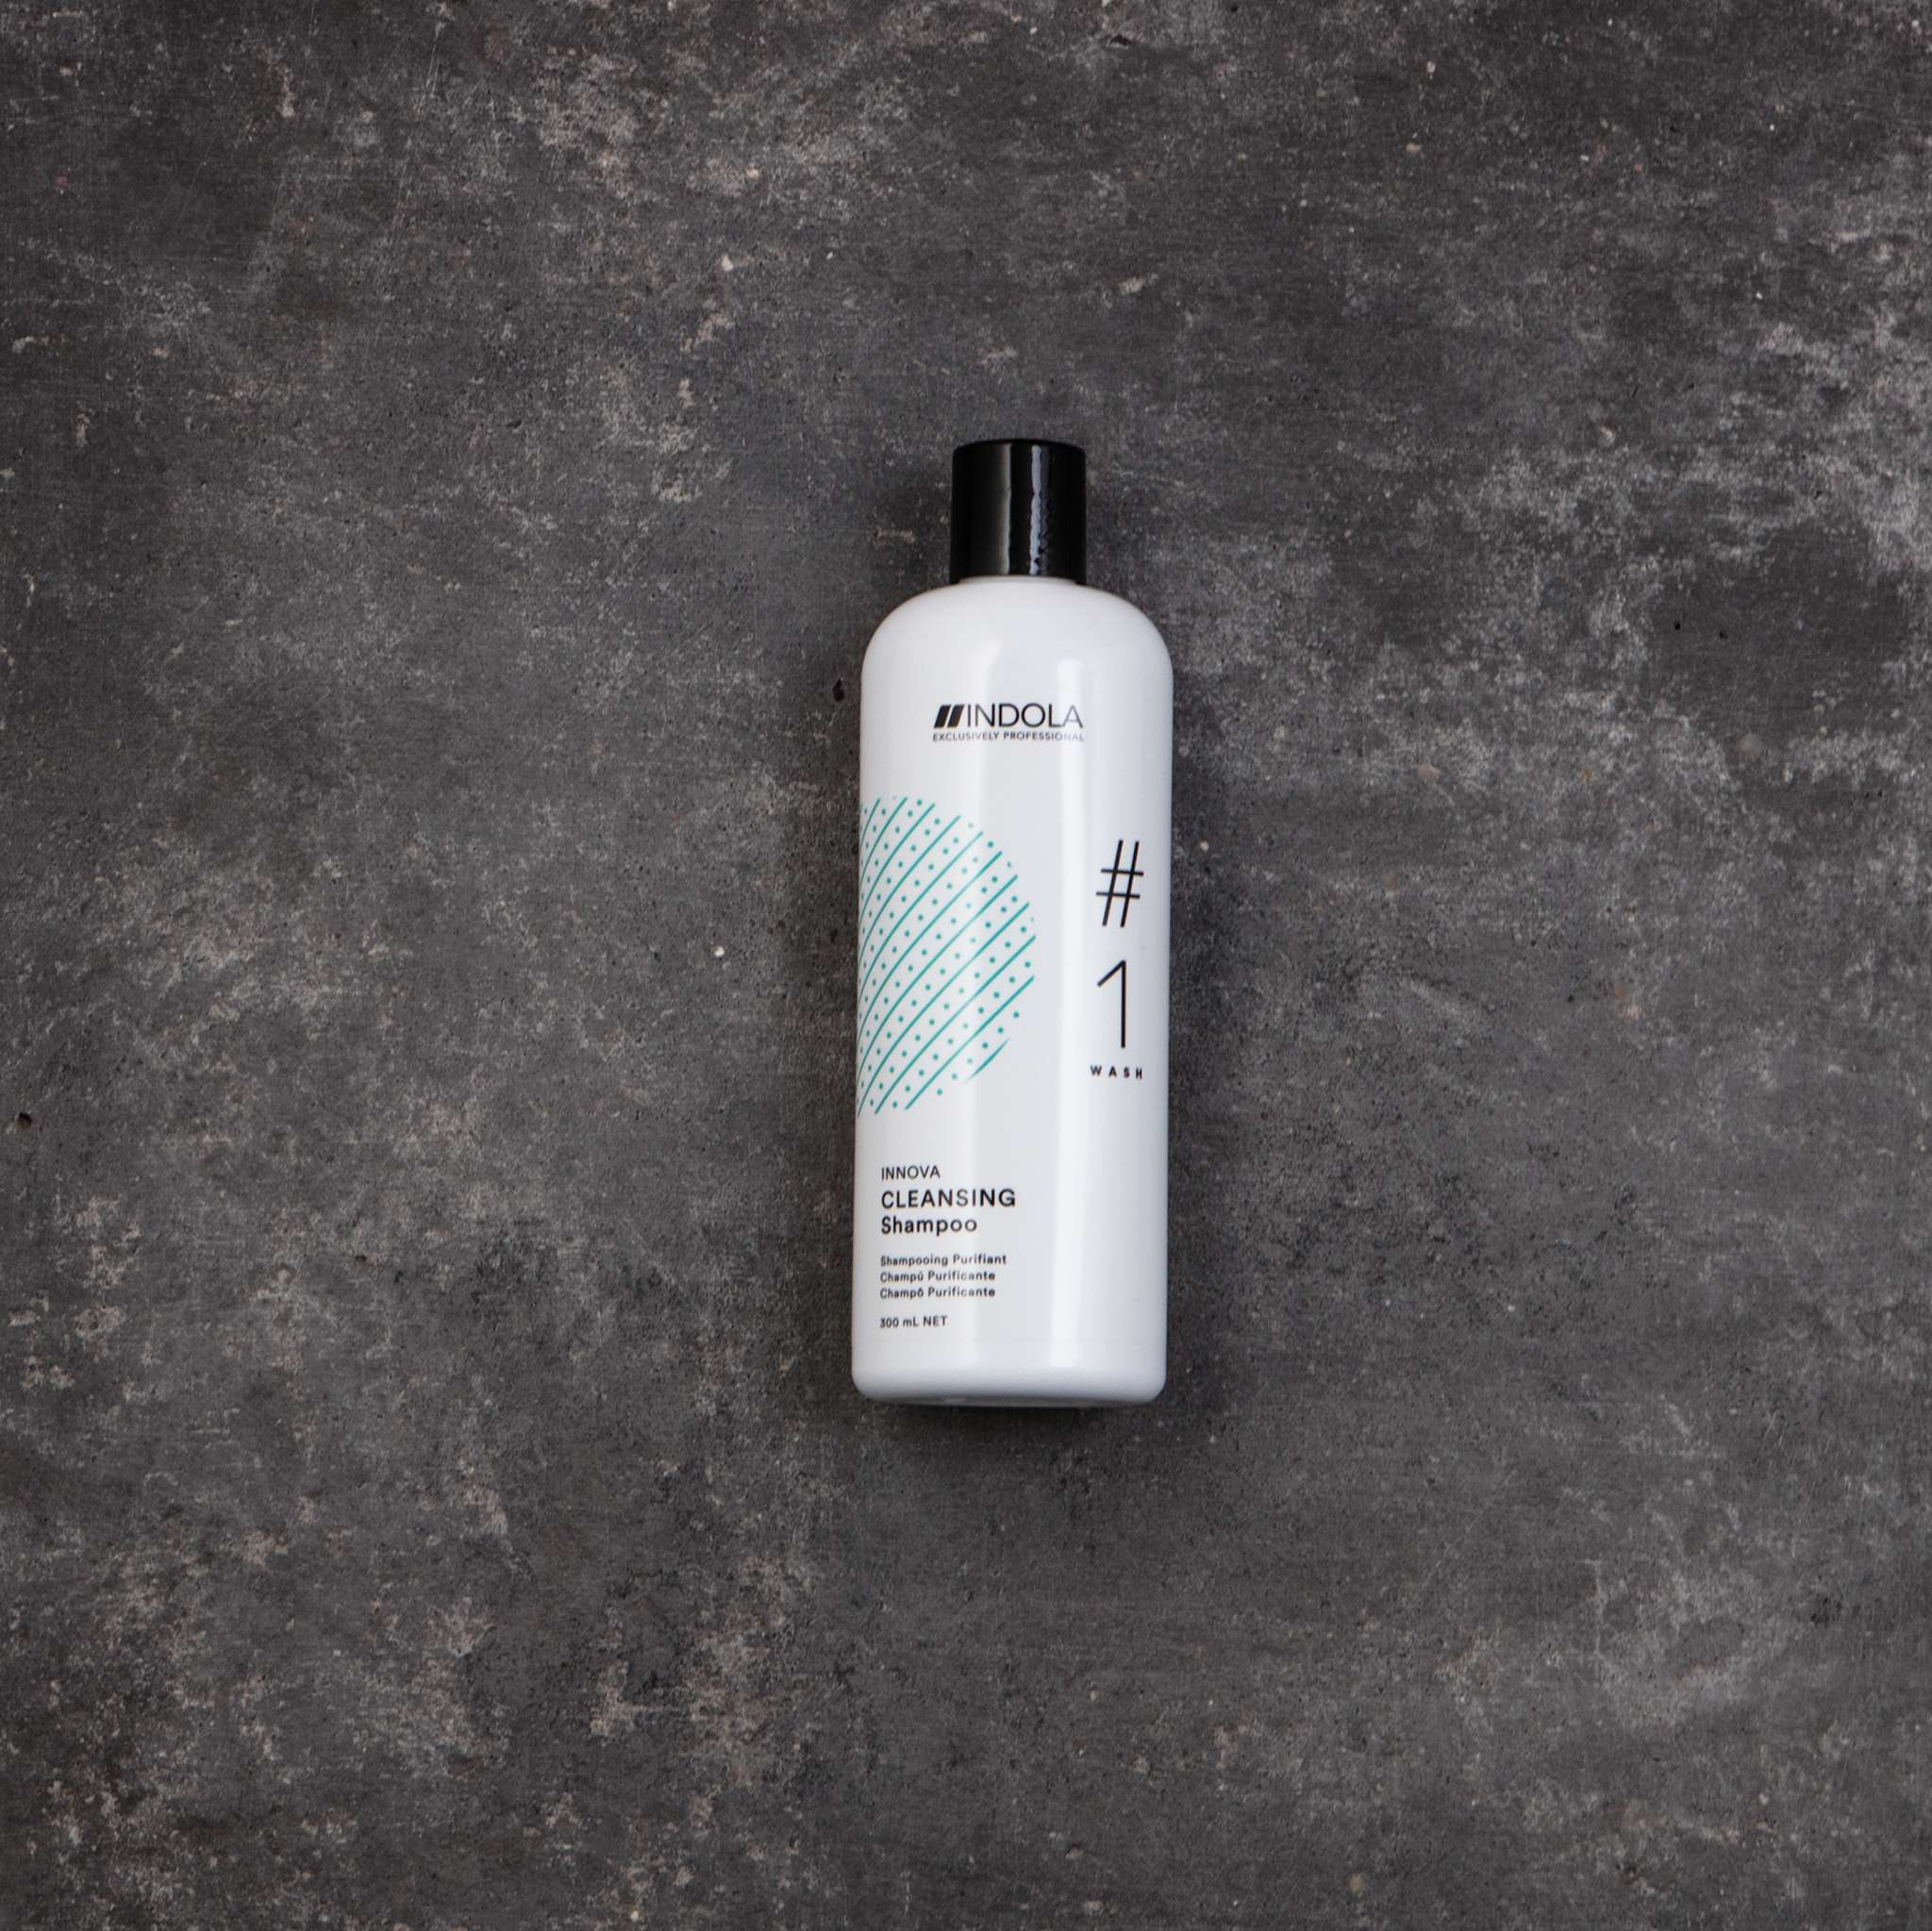 cleansing_shampoo_1